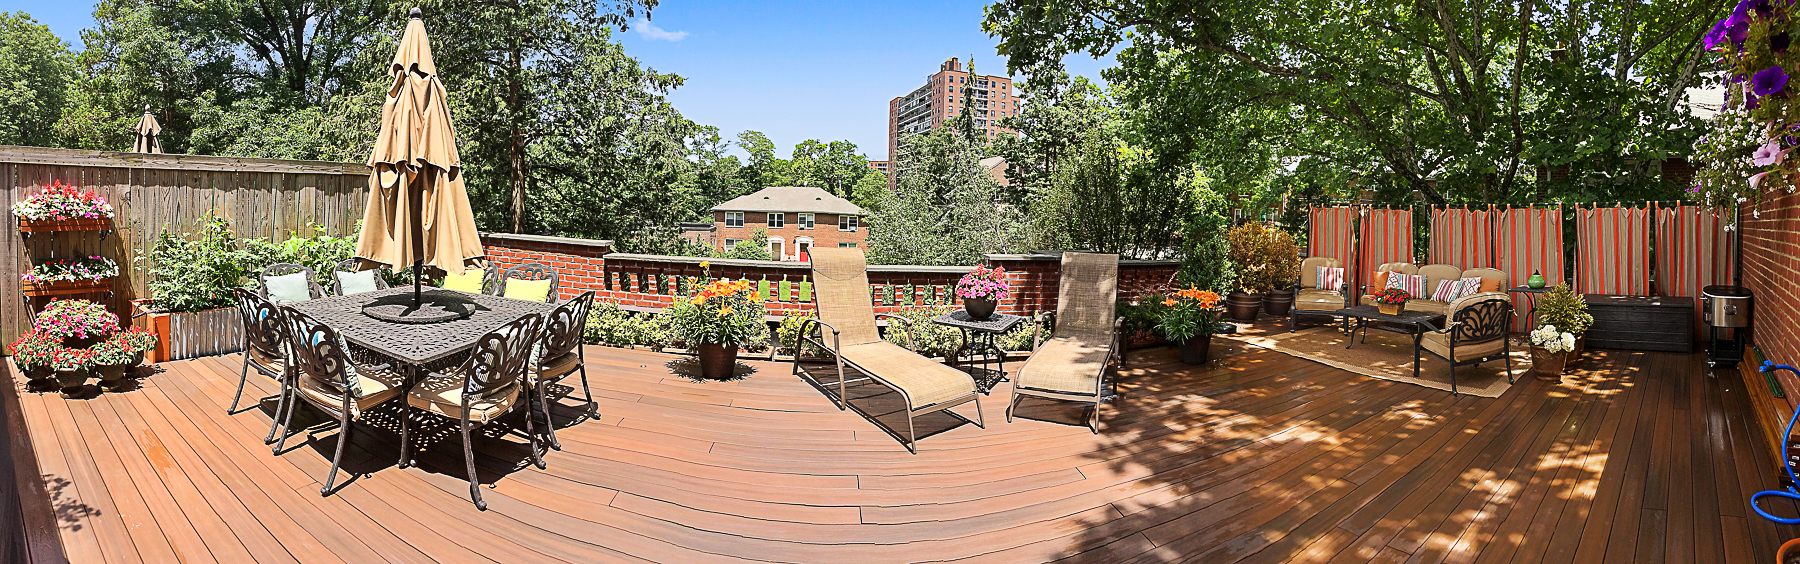 Société civile immobilière pour l Vente à MINT 2 BR CO-OP WITH HUGE TERRACE AND PARKING 4601 Henry Hudson Parkway B2 Riverdale, New York, 10471 États-Unis